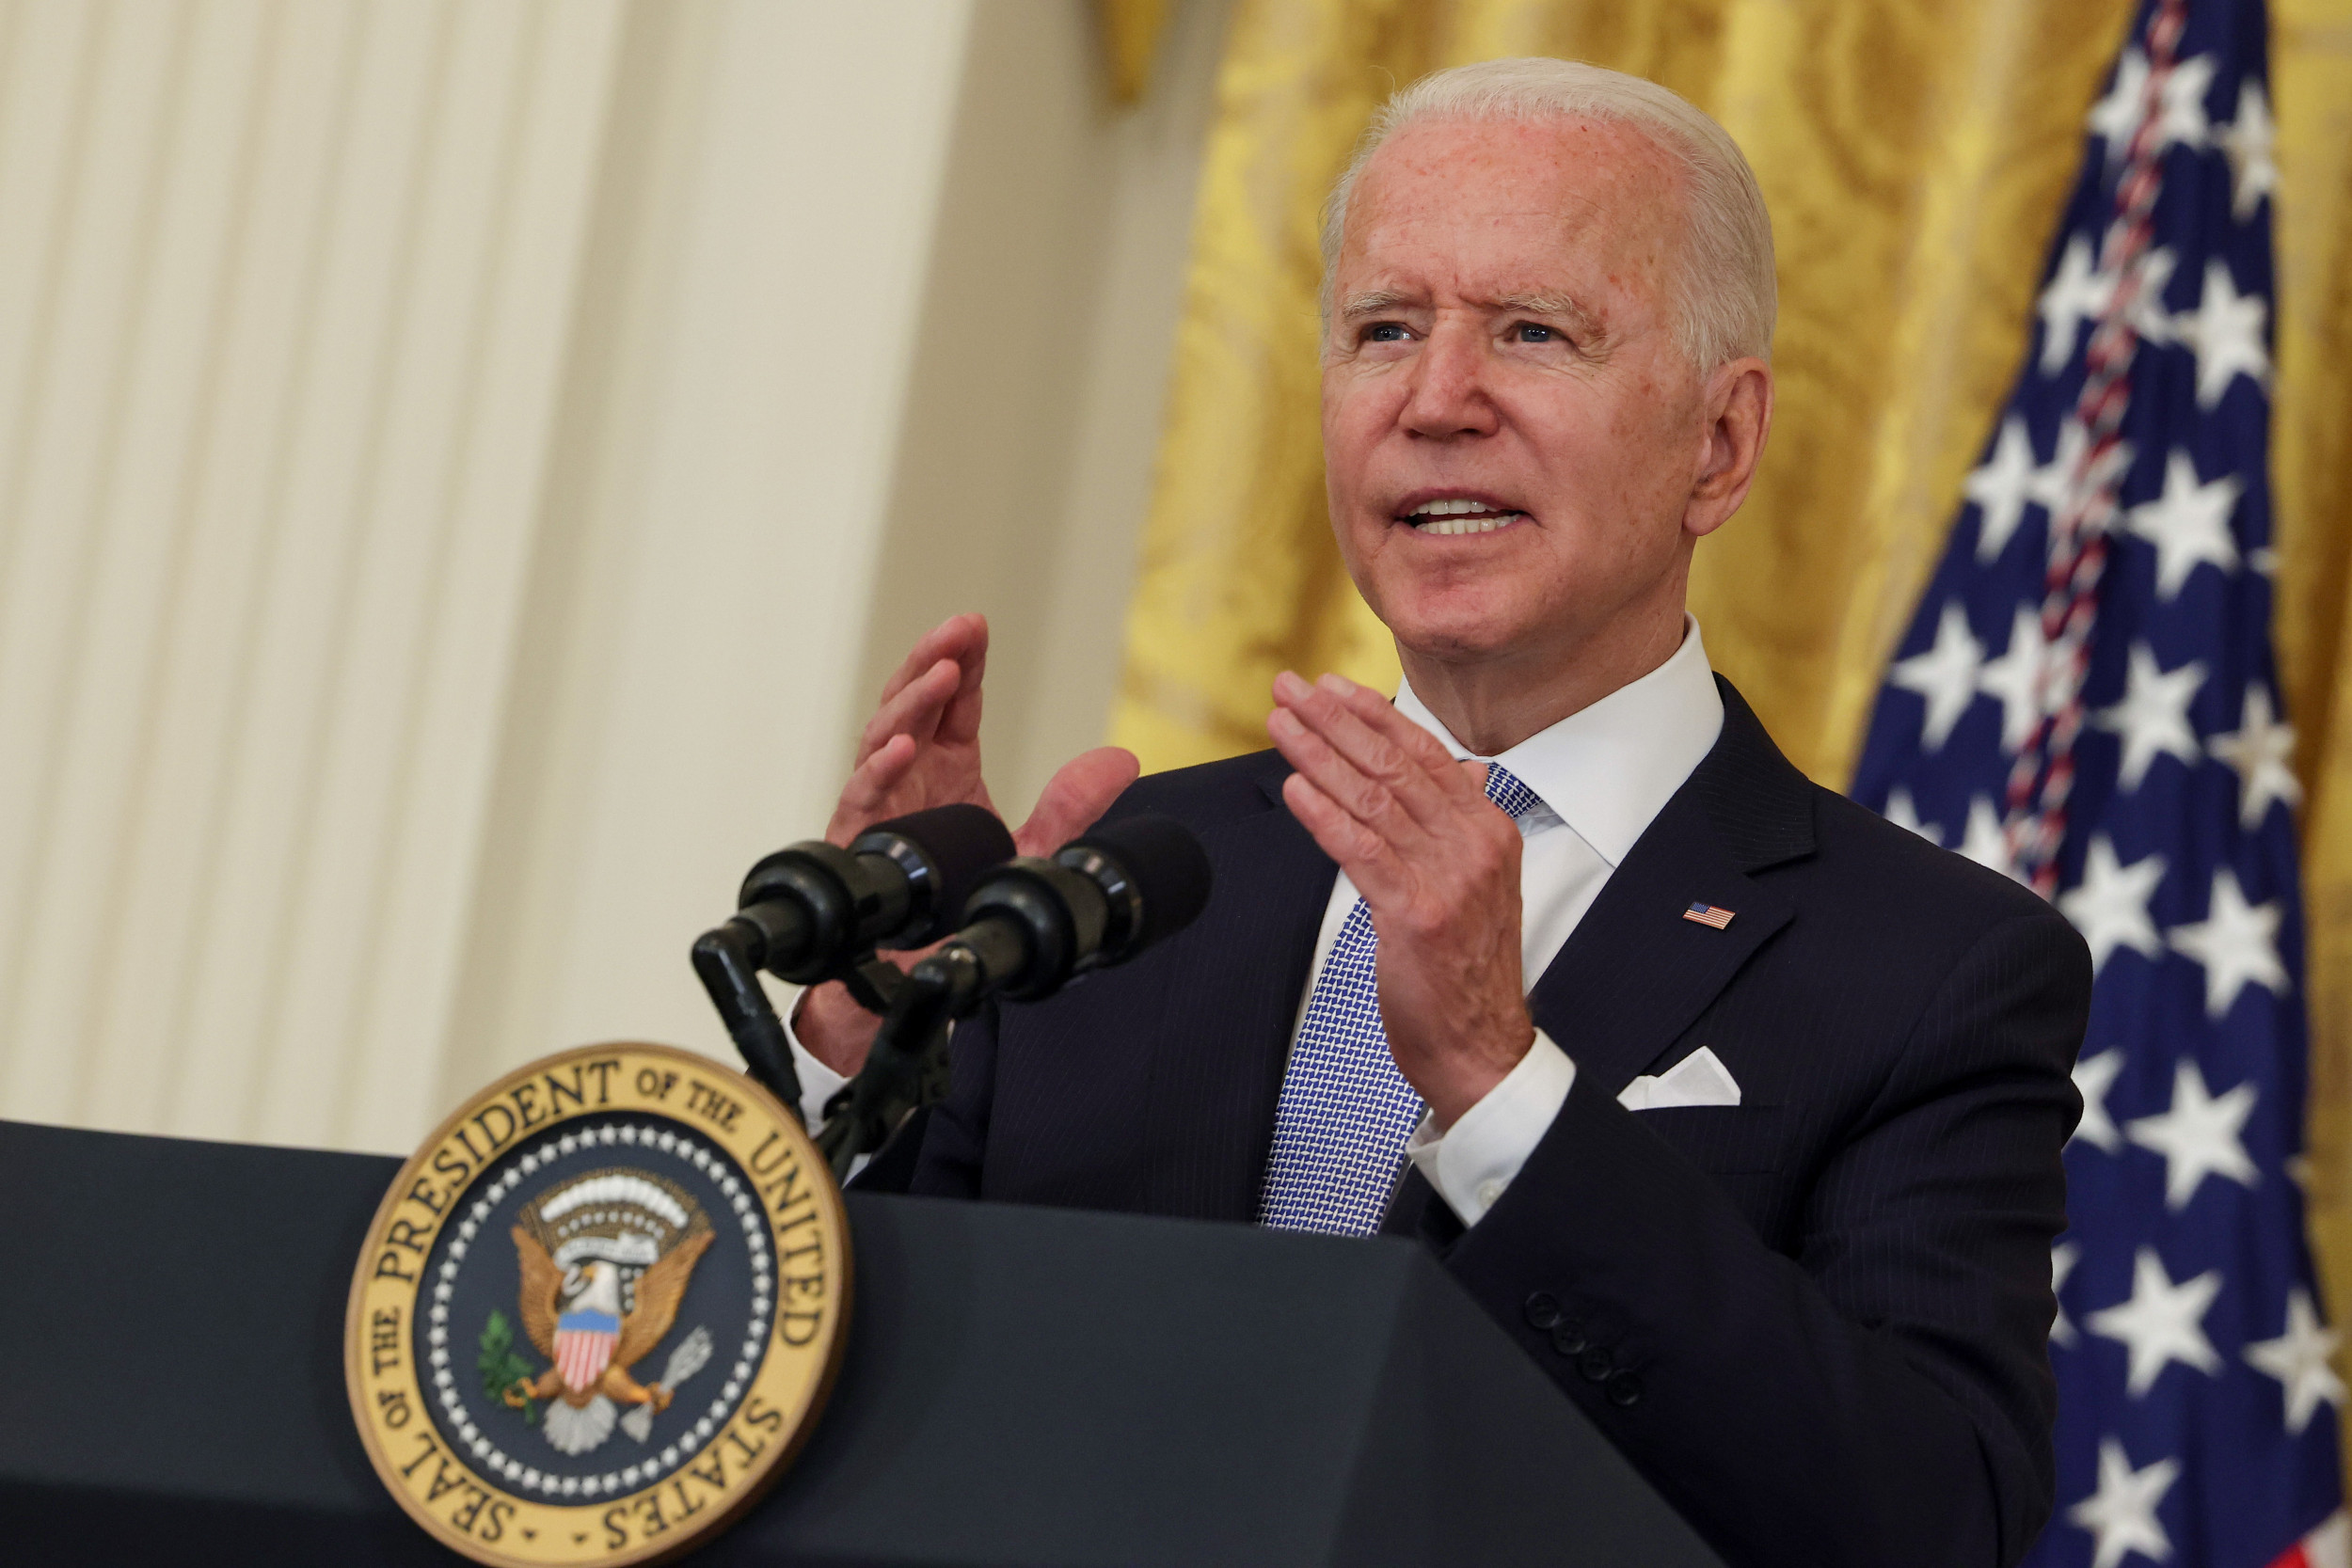 While 51% of Voters Approve of Biden's Performance, Only 25% Approve of Congress